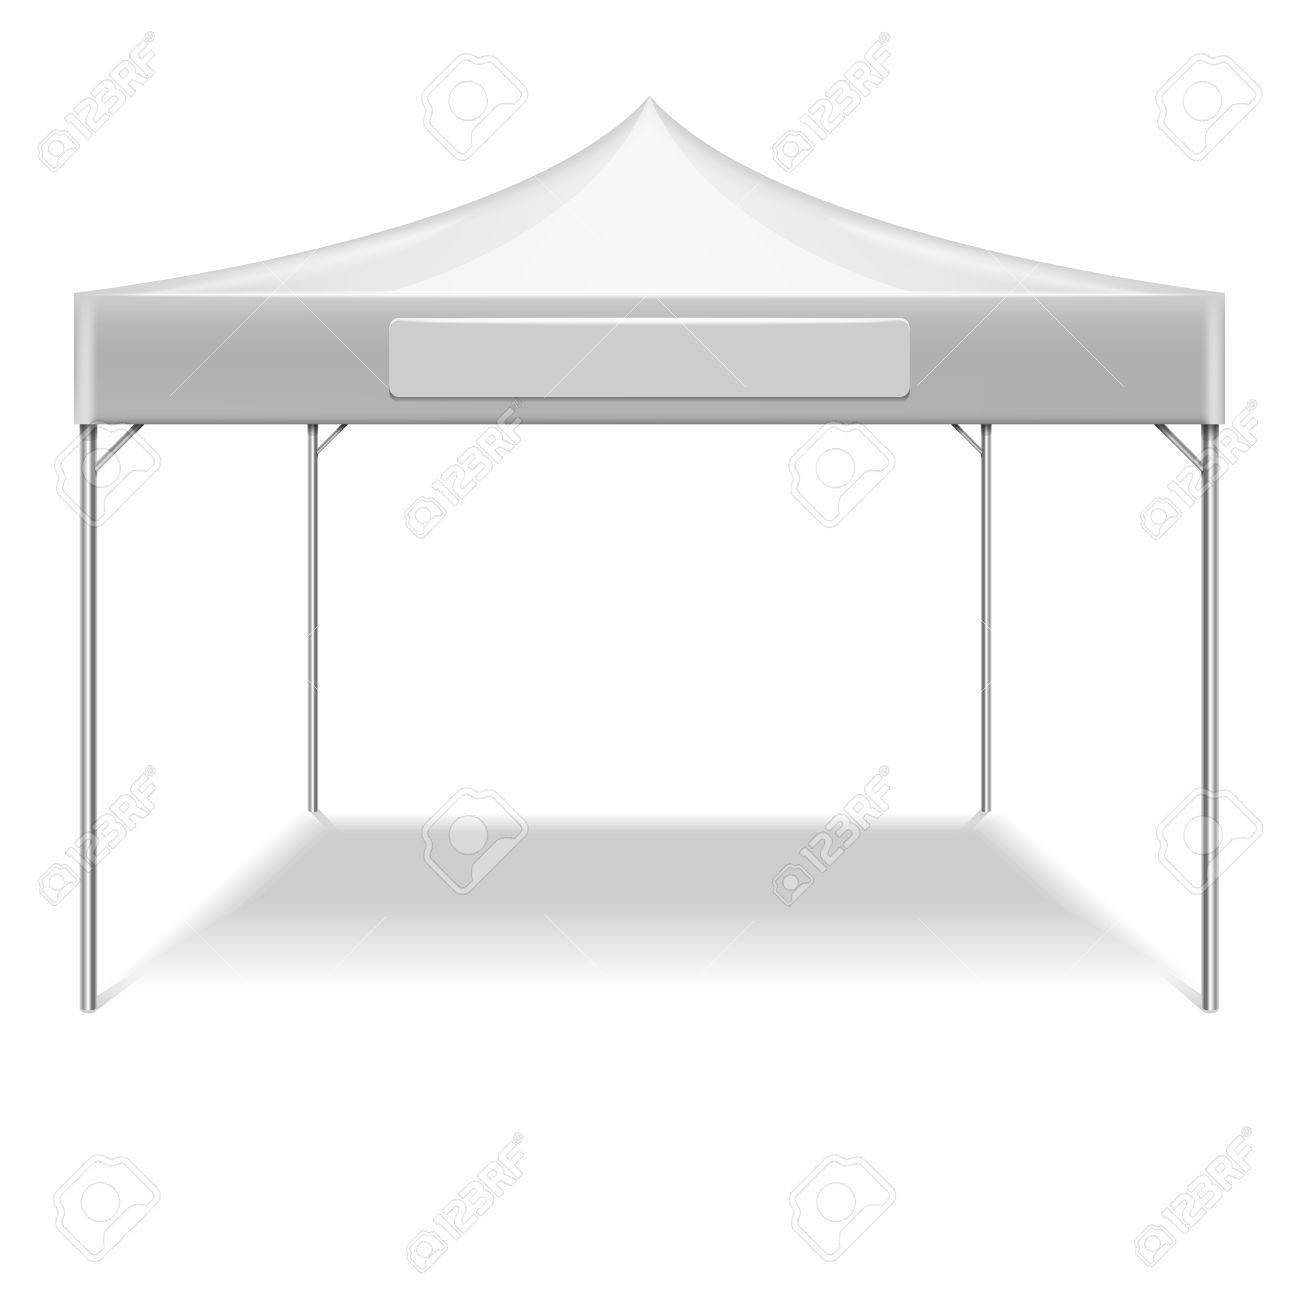 Realistic white folding tent for outdoor party in garden. Vector mockup tent for protection from  sc 1 st  123RF.com & Realistic White Folding Tent For Outdoor Party In Garden. Vector ...